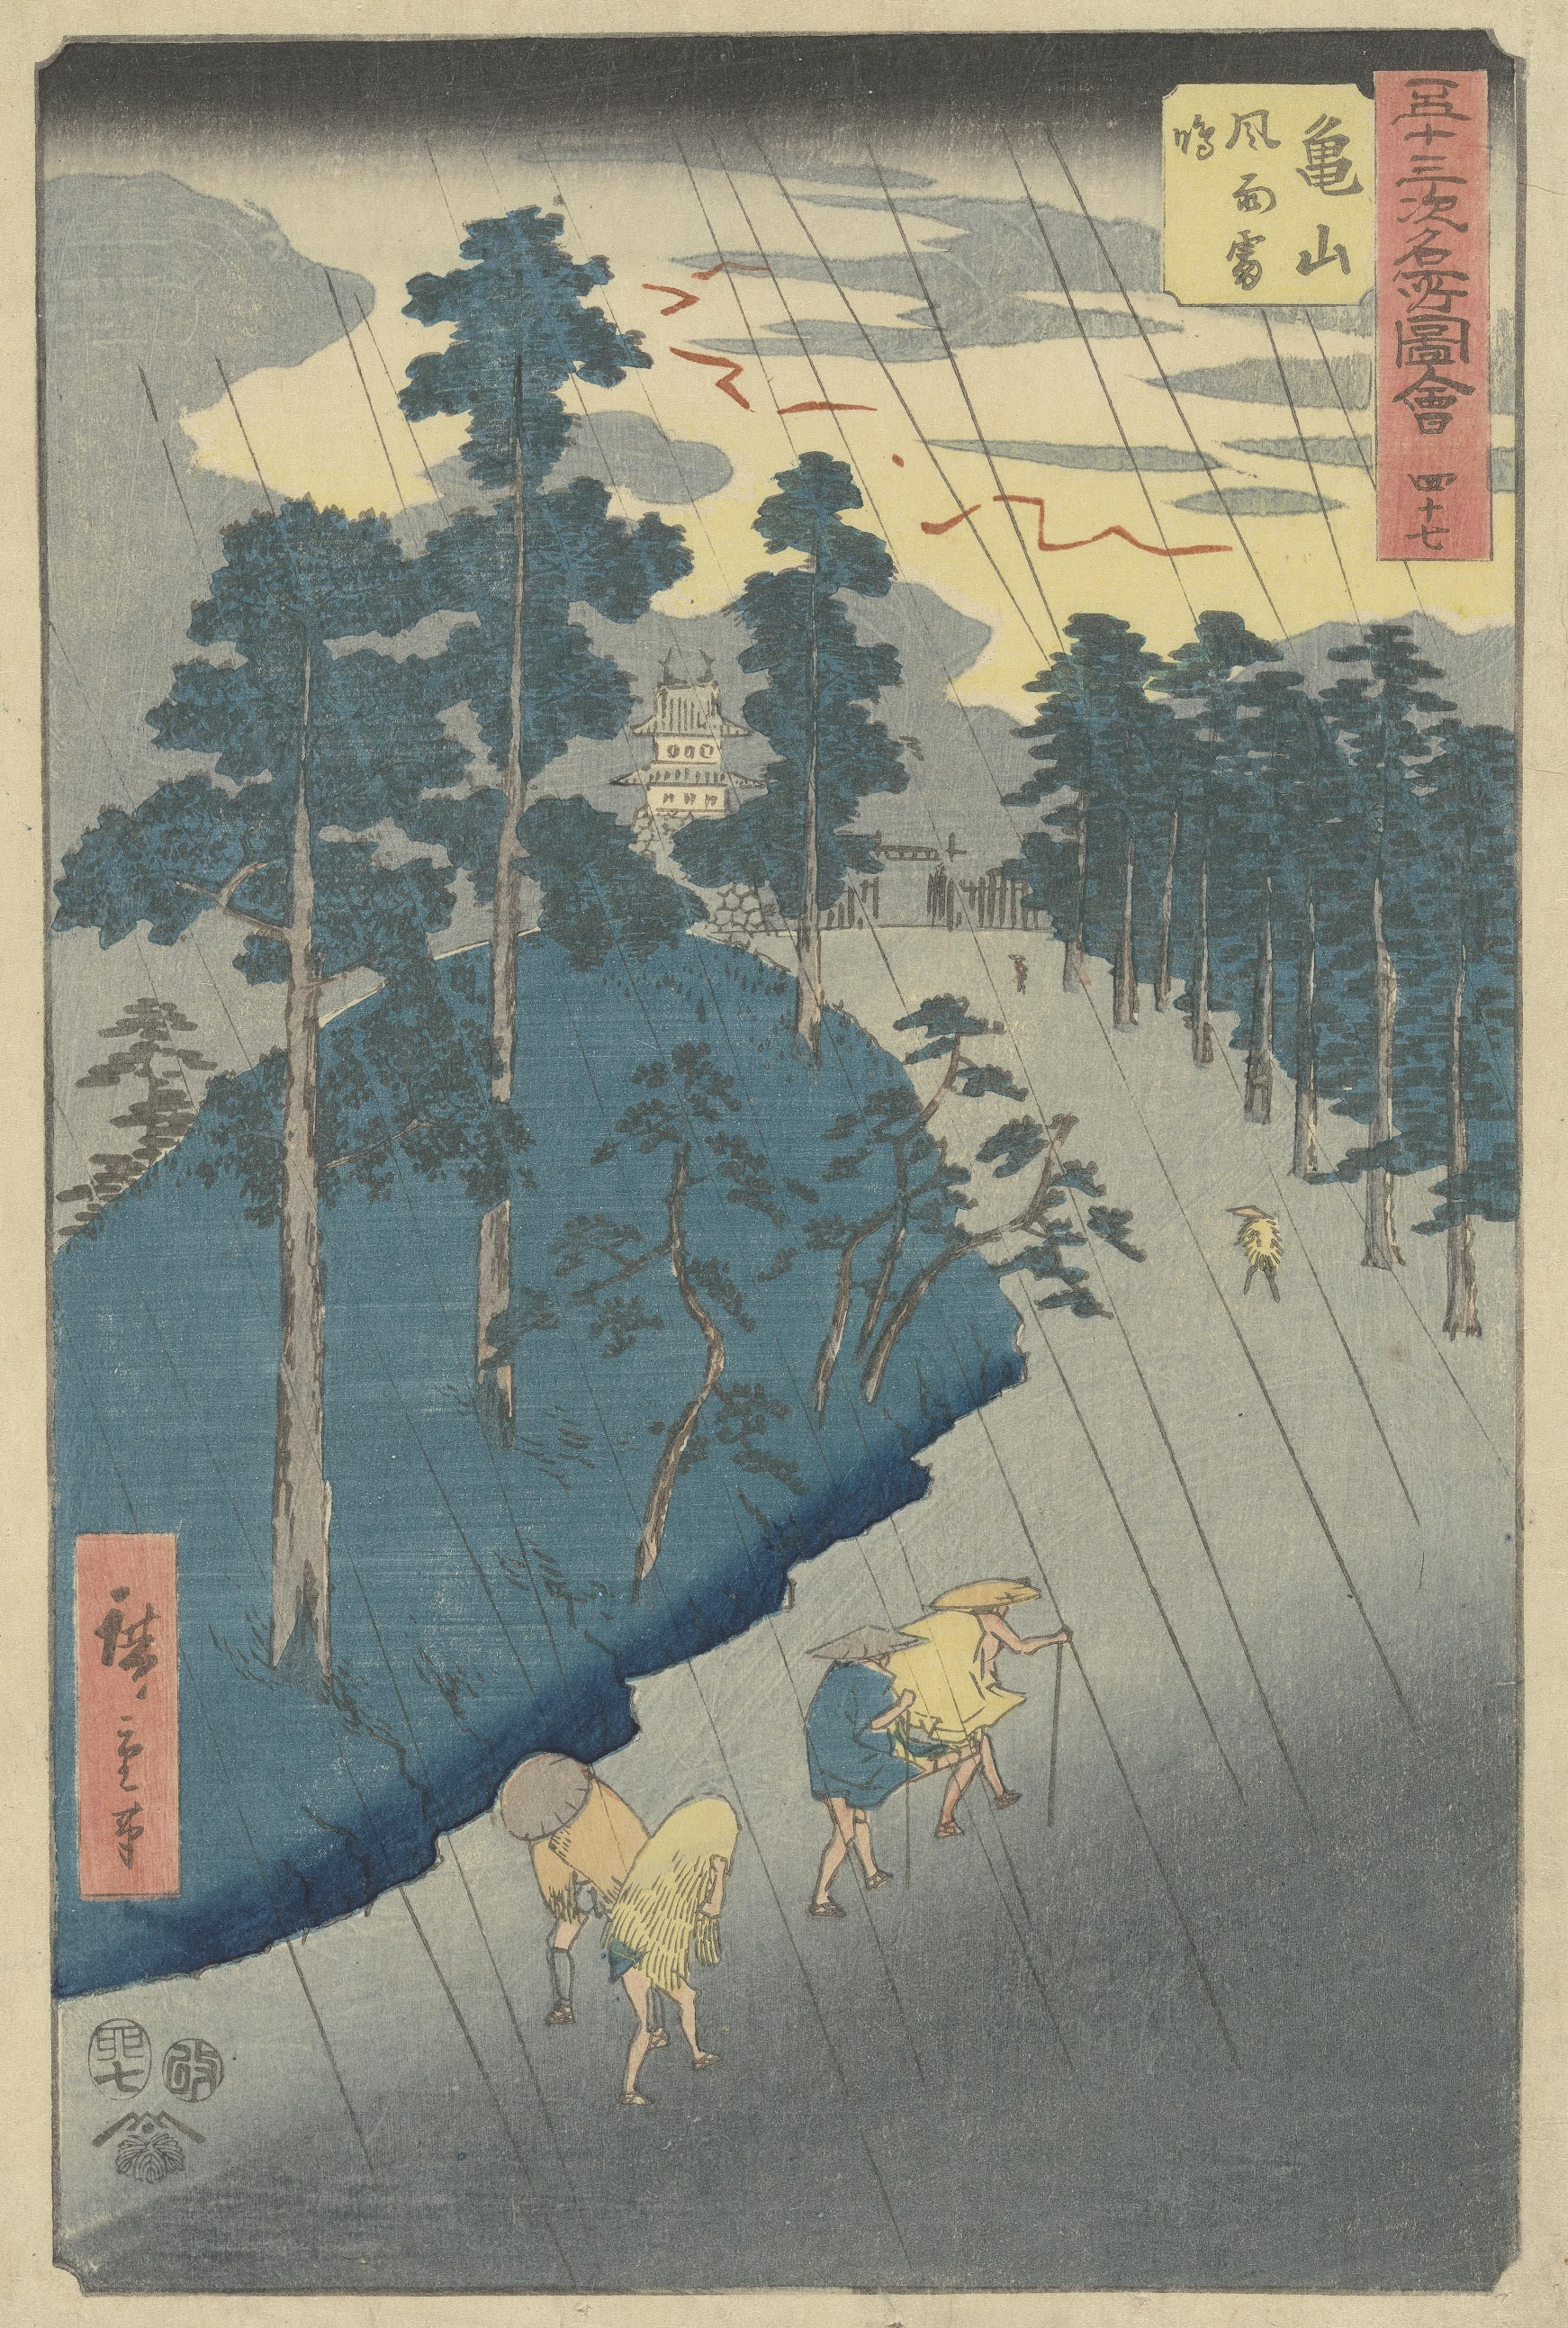 Kameyama: Wind, Rain and Thunder, no. 47 from the series Collection of Illustrations of Famous Places near the Fifty-Three Stations [Along the Tōkaidō] Utagawa Hiroshige, seventh month 1855